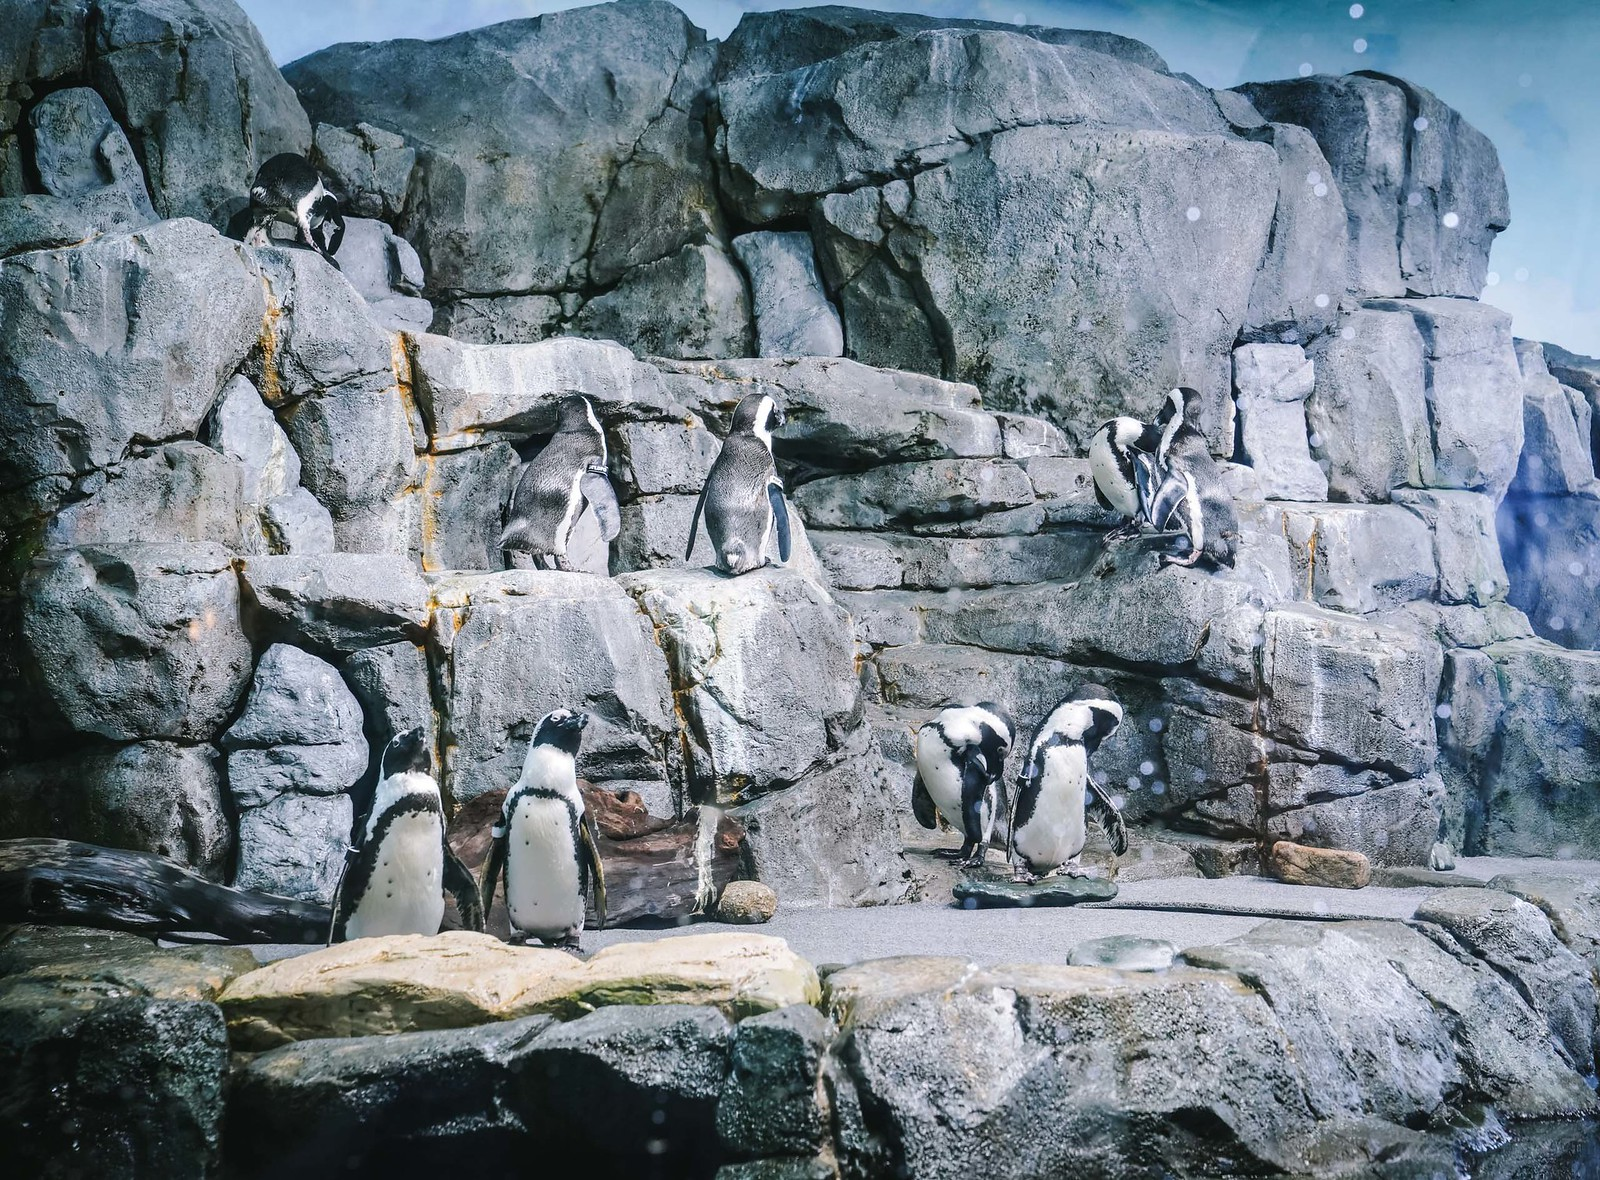 penguins at monterey bay aquarium